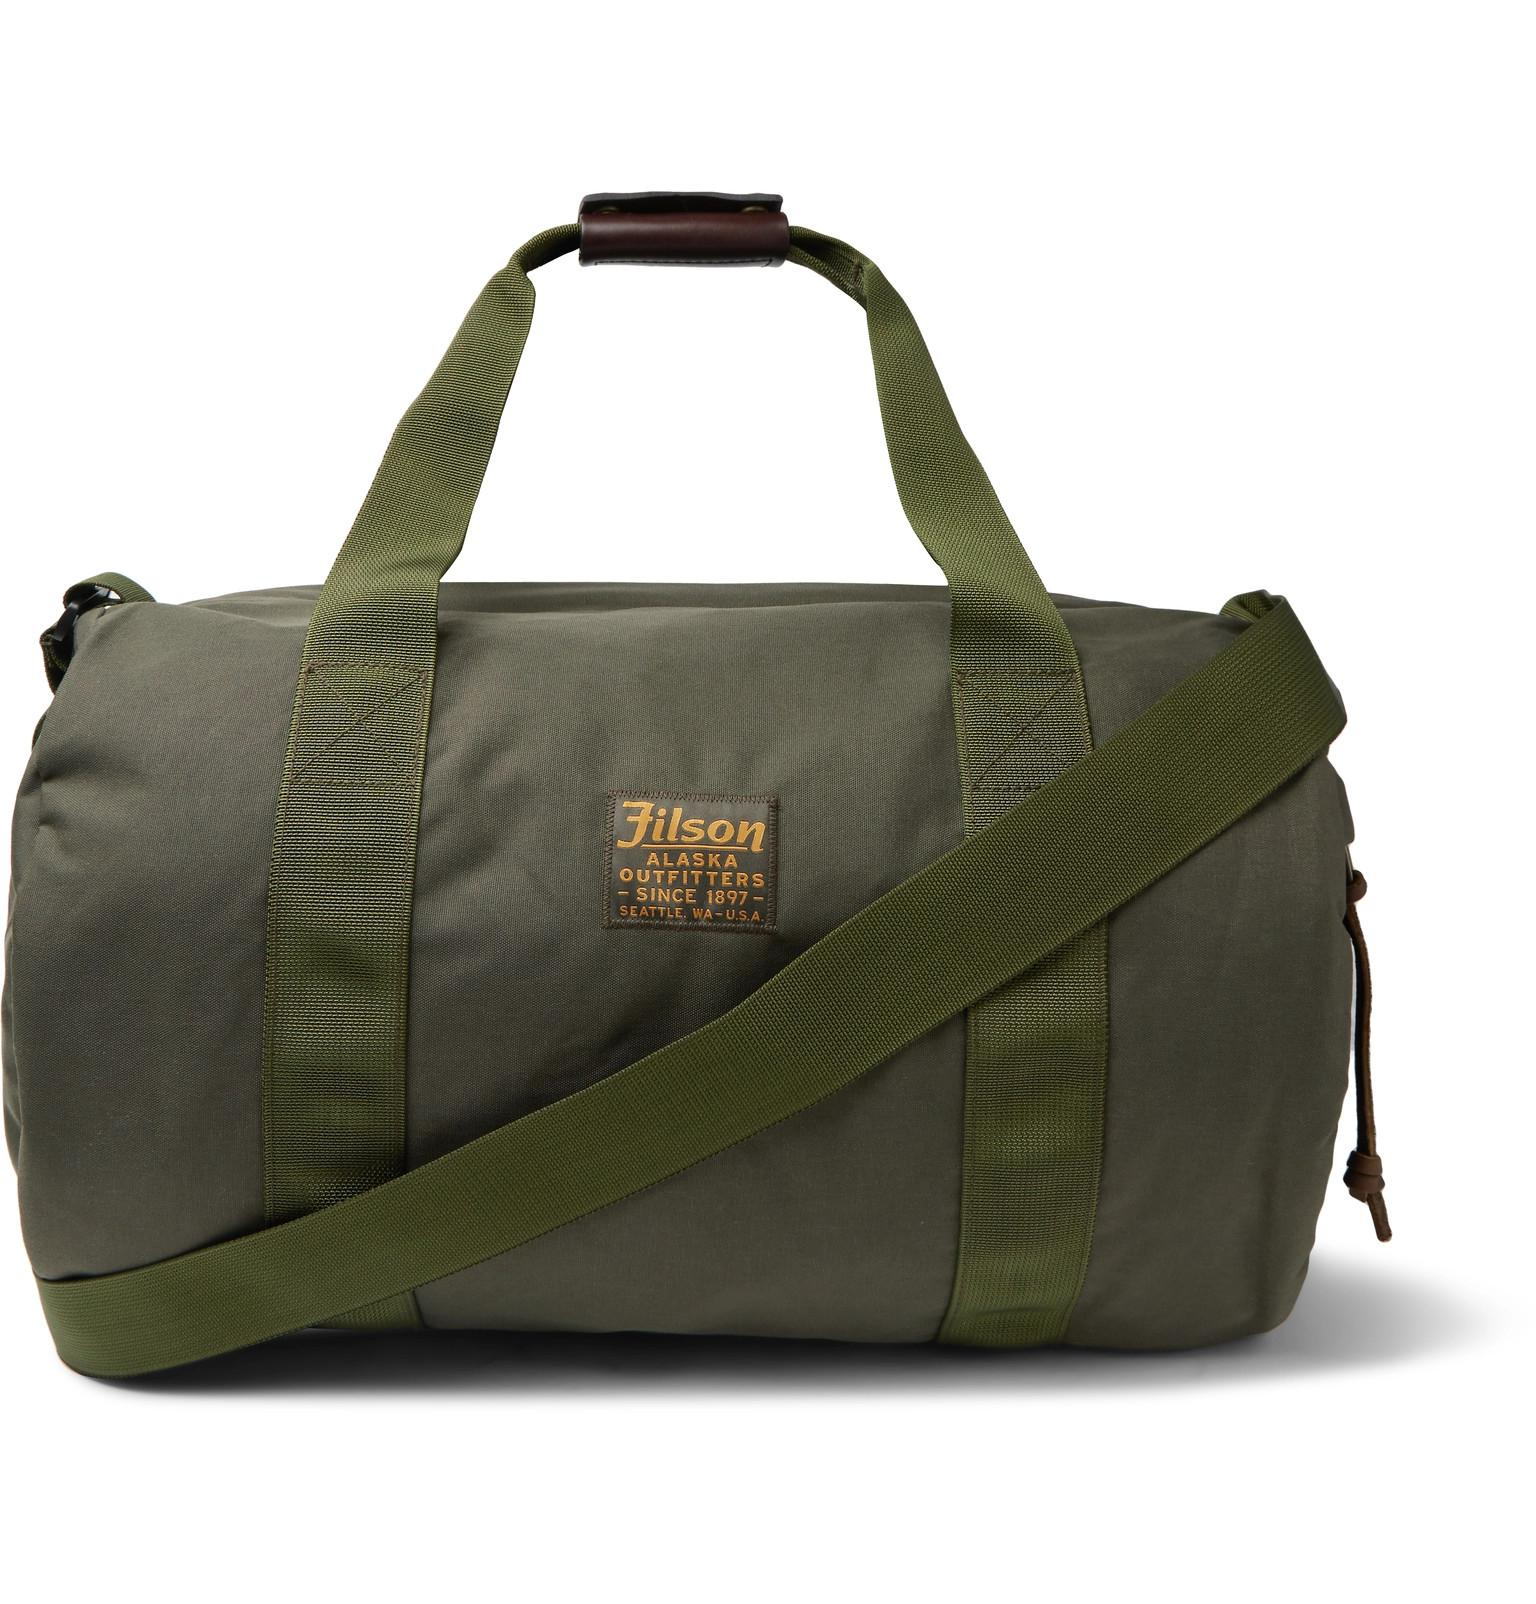 Discussion on this topic: Filson Bags Exclusively For Mr Porter, filson-bags-exclusively-for-mr-porter/